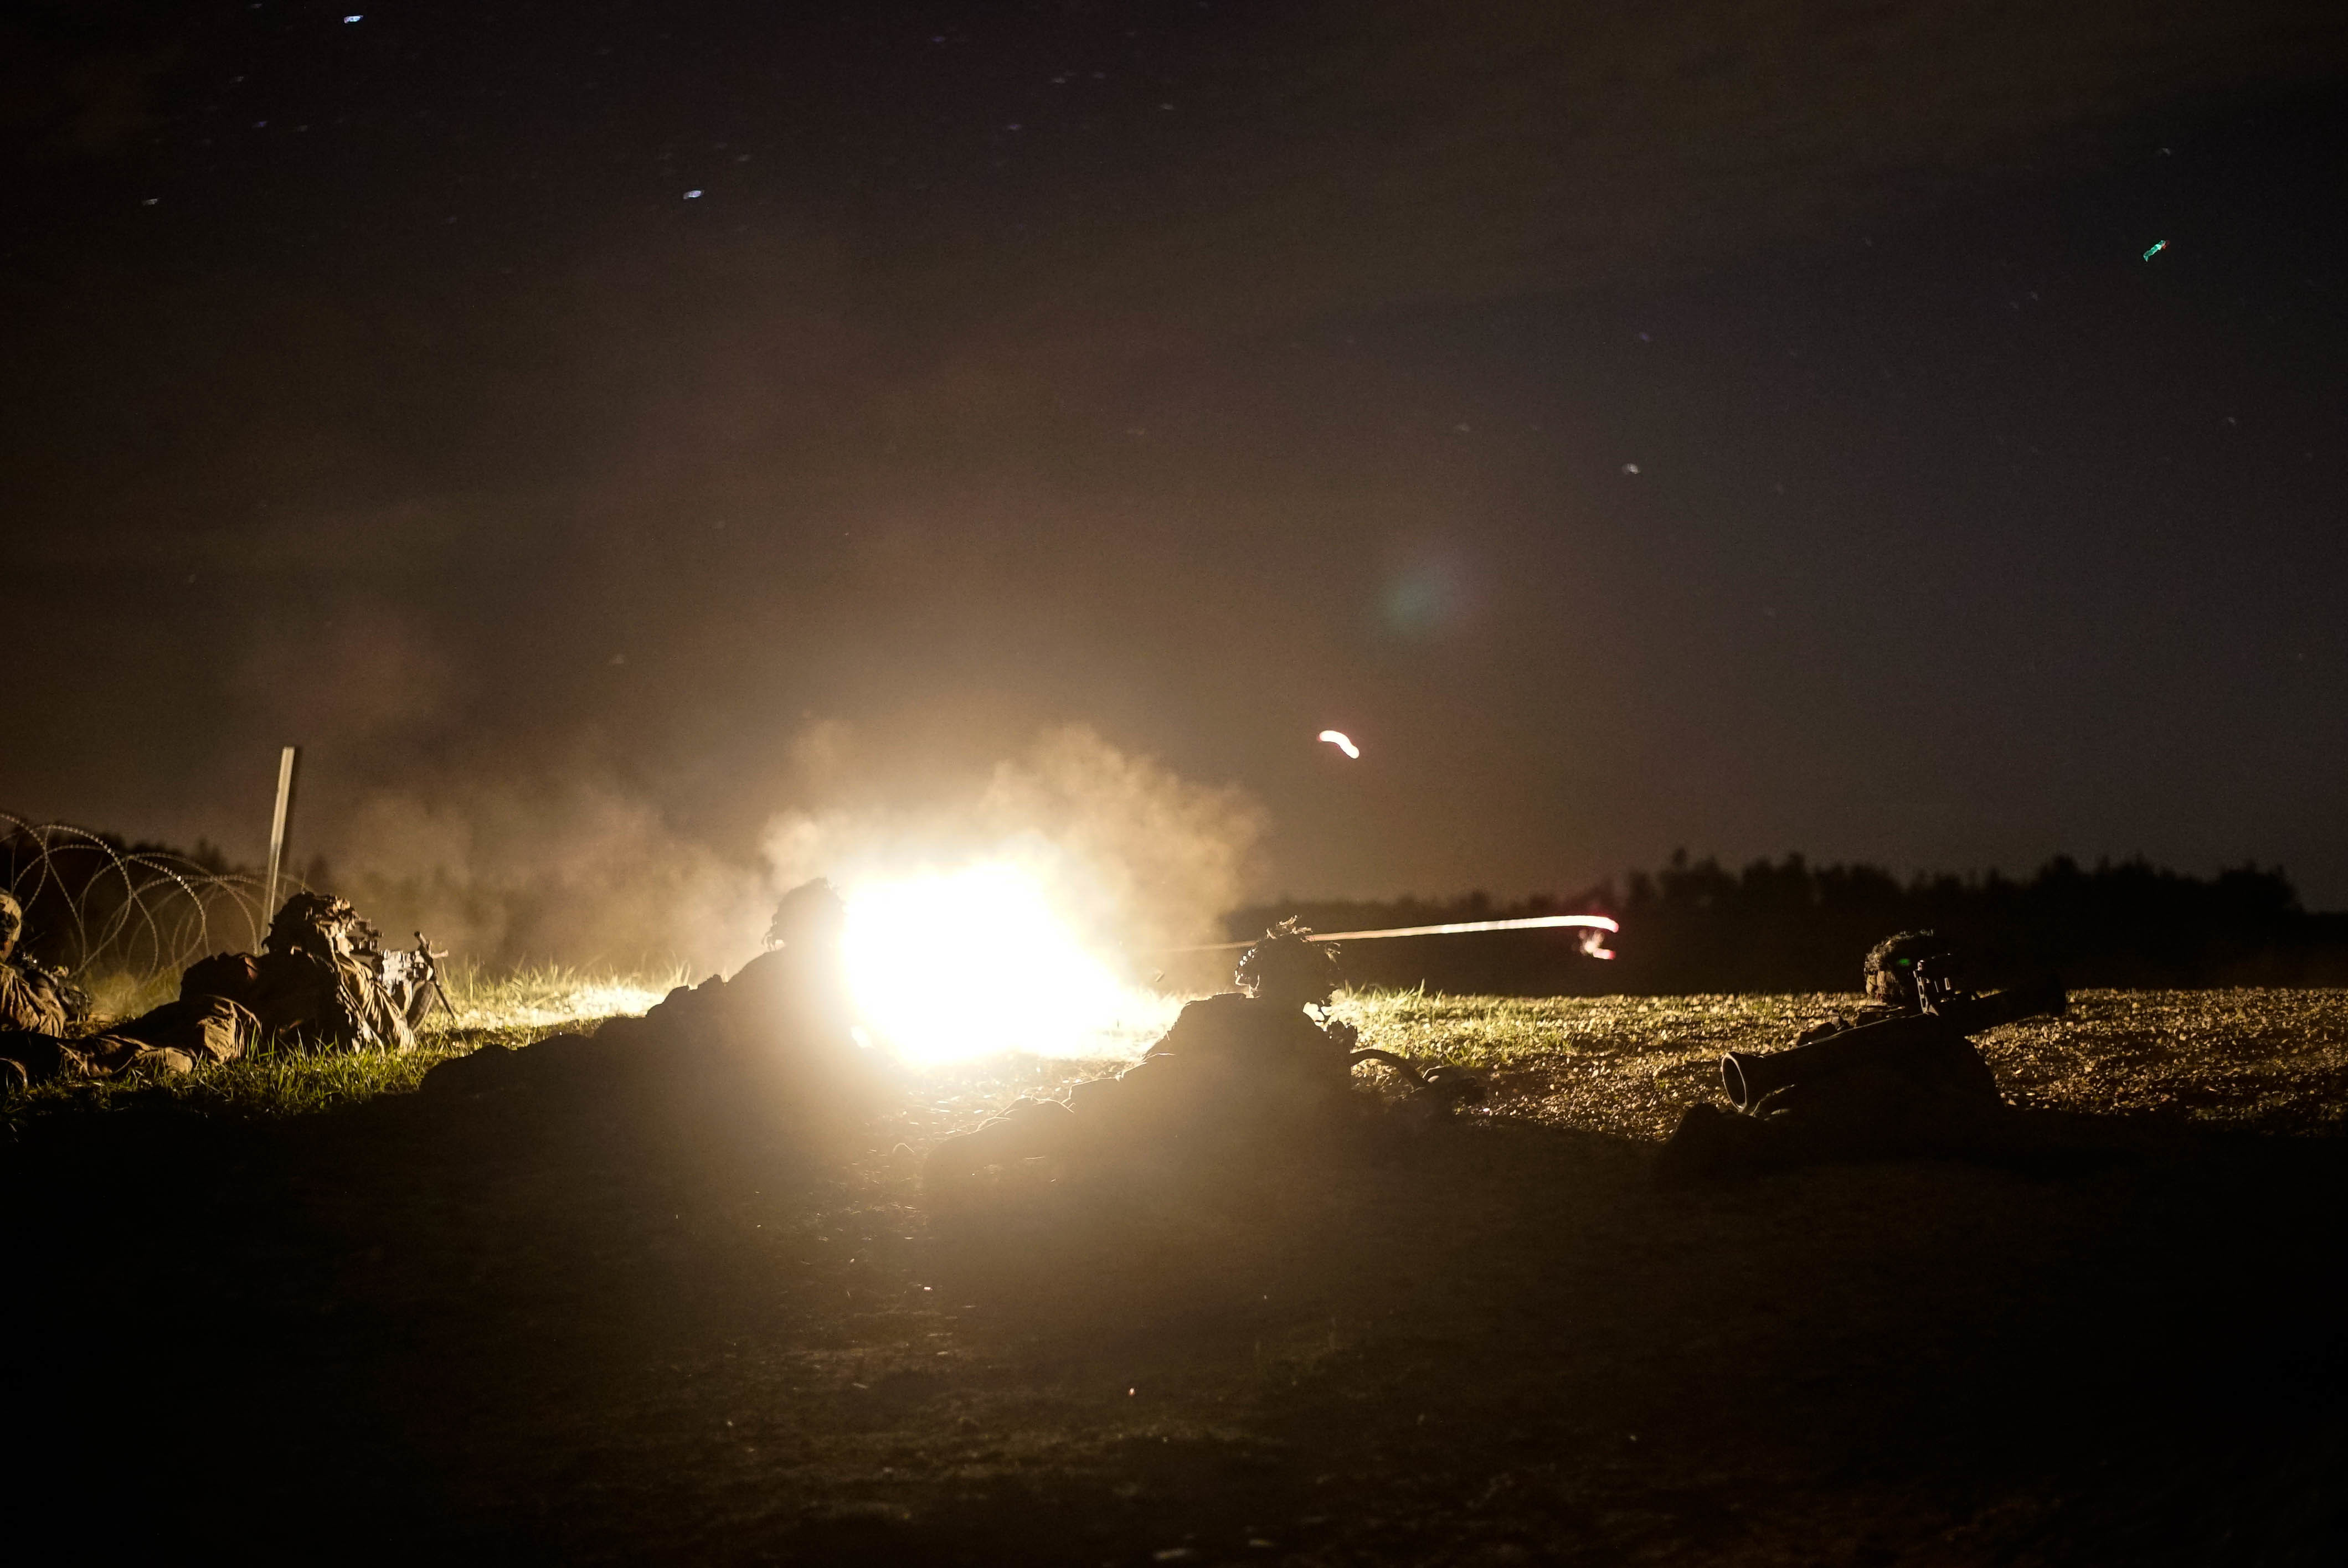 U.S. Army Paratroopers with the 1st Battalion, 503rd Infantry Regiment, 173rd Airborne Brigade fire down range during a night exercise at the 7th Army Training Command's Grafenwoehr Training Area, Germany, May. 2, 2018. Exercise Fury is a combined arms live fire exercise that tests day and night live fire capabilities across multiple military specialties. (U.S. Army Photo by Spc. Elliott Banks)